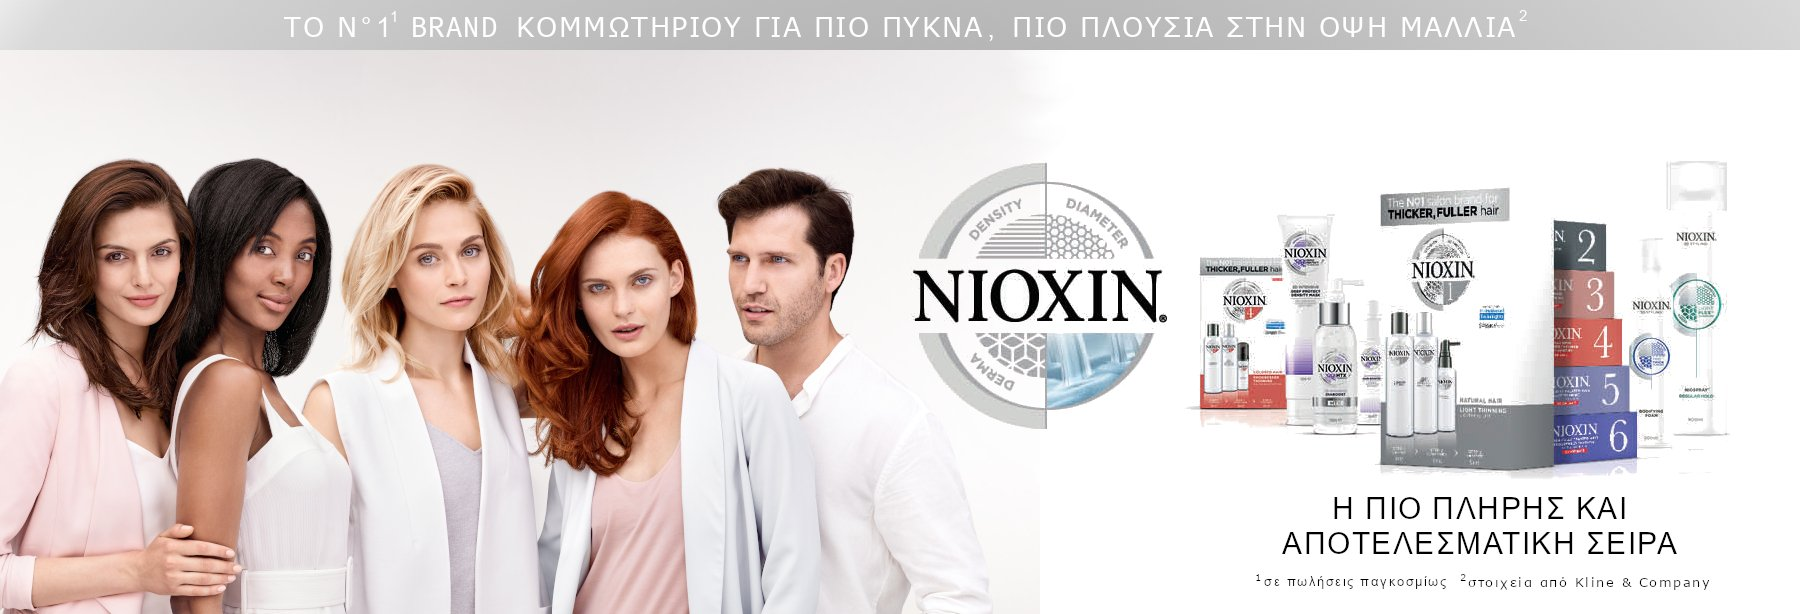 NIOXIN_CATEGORY_BANNER.jpg